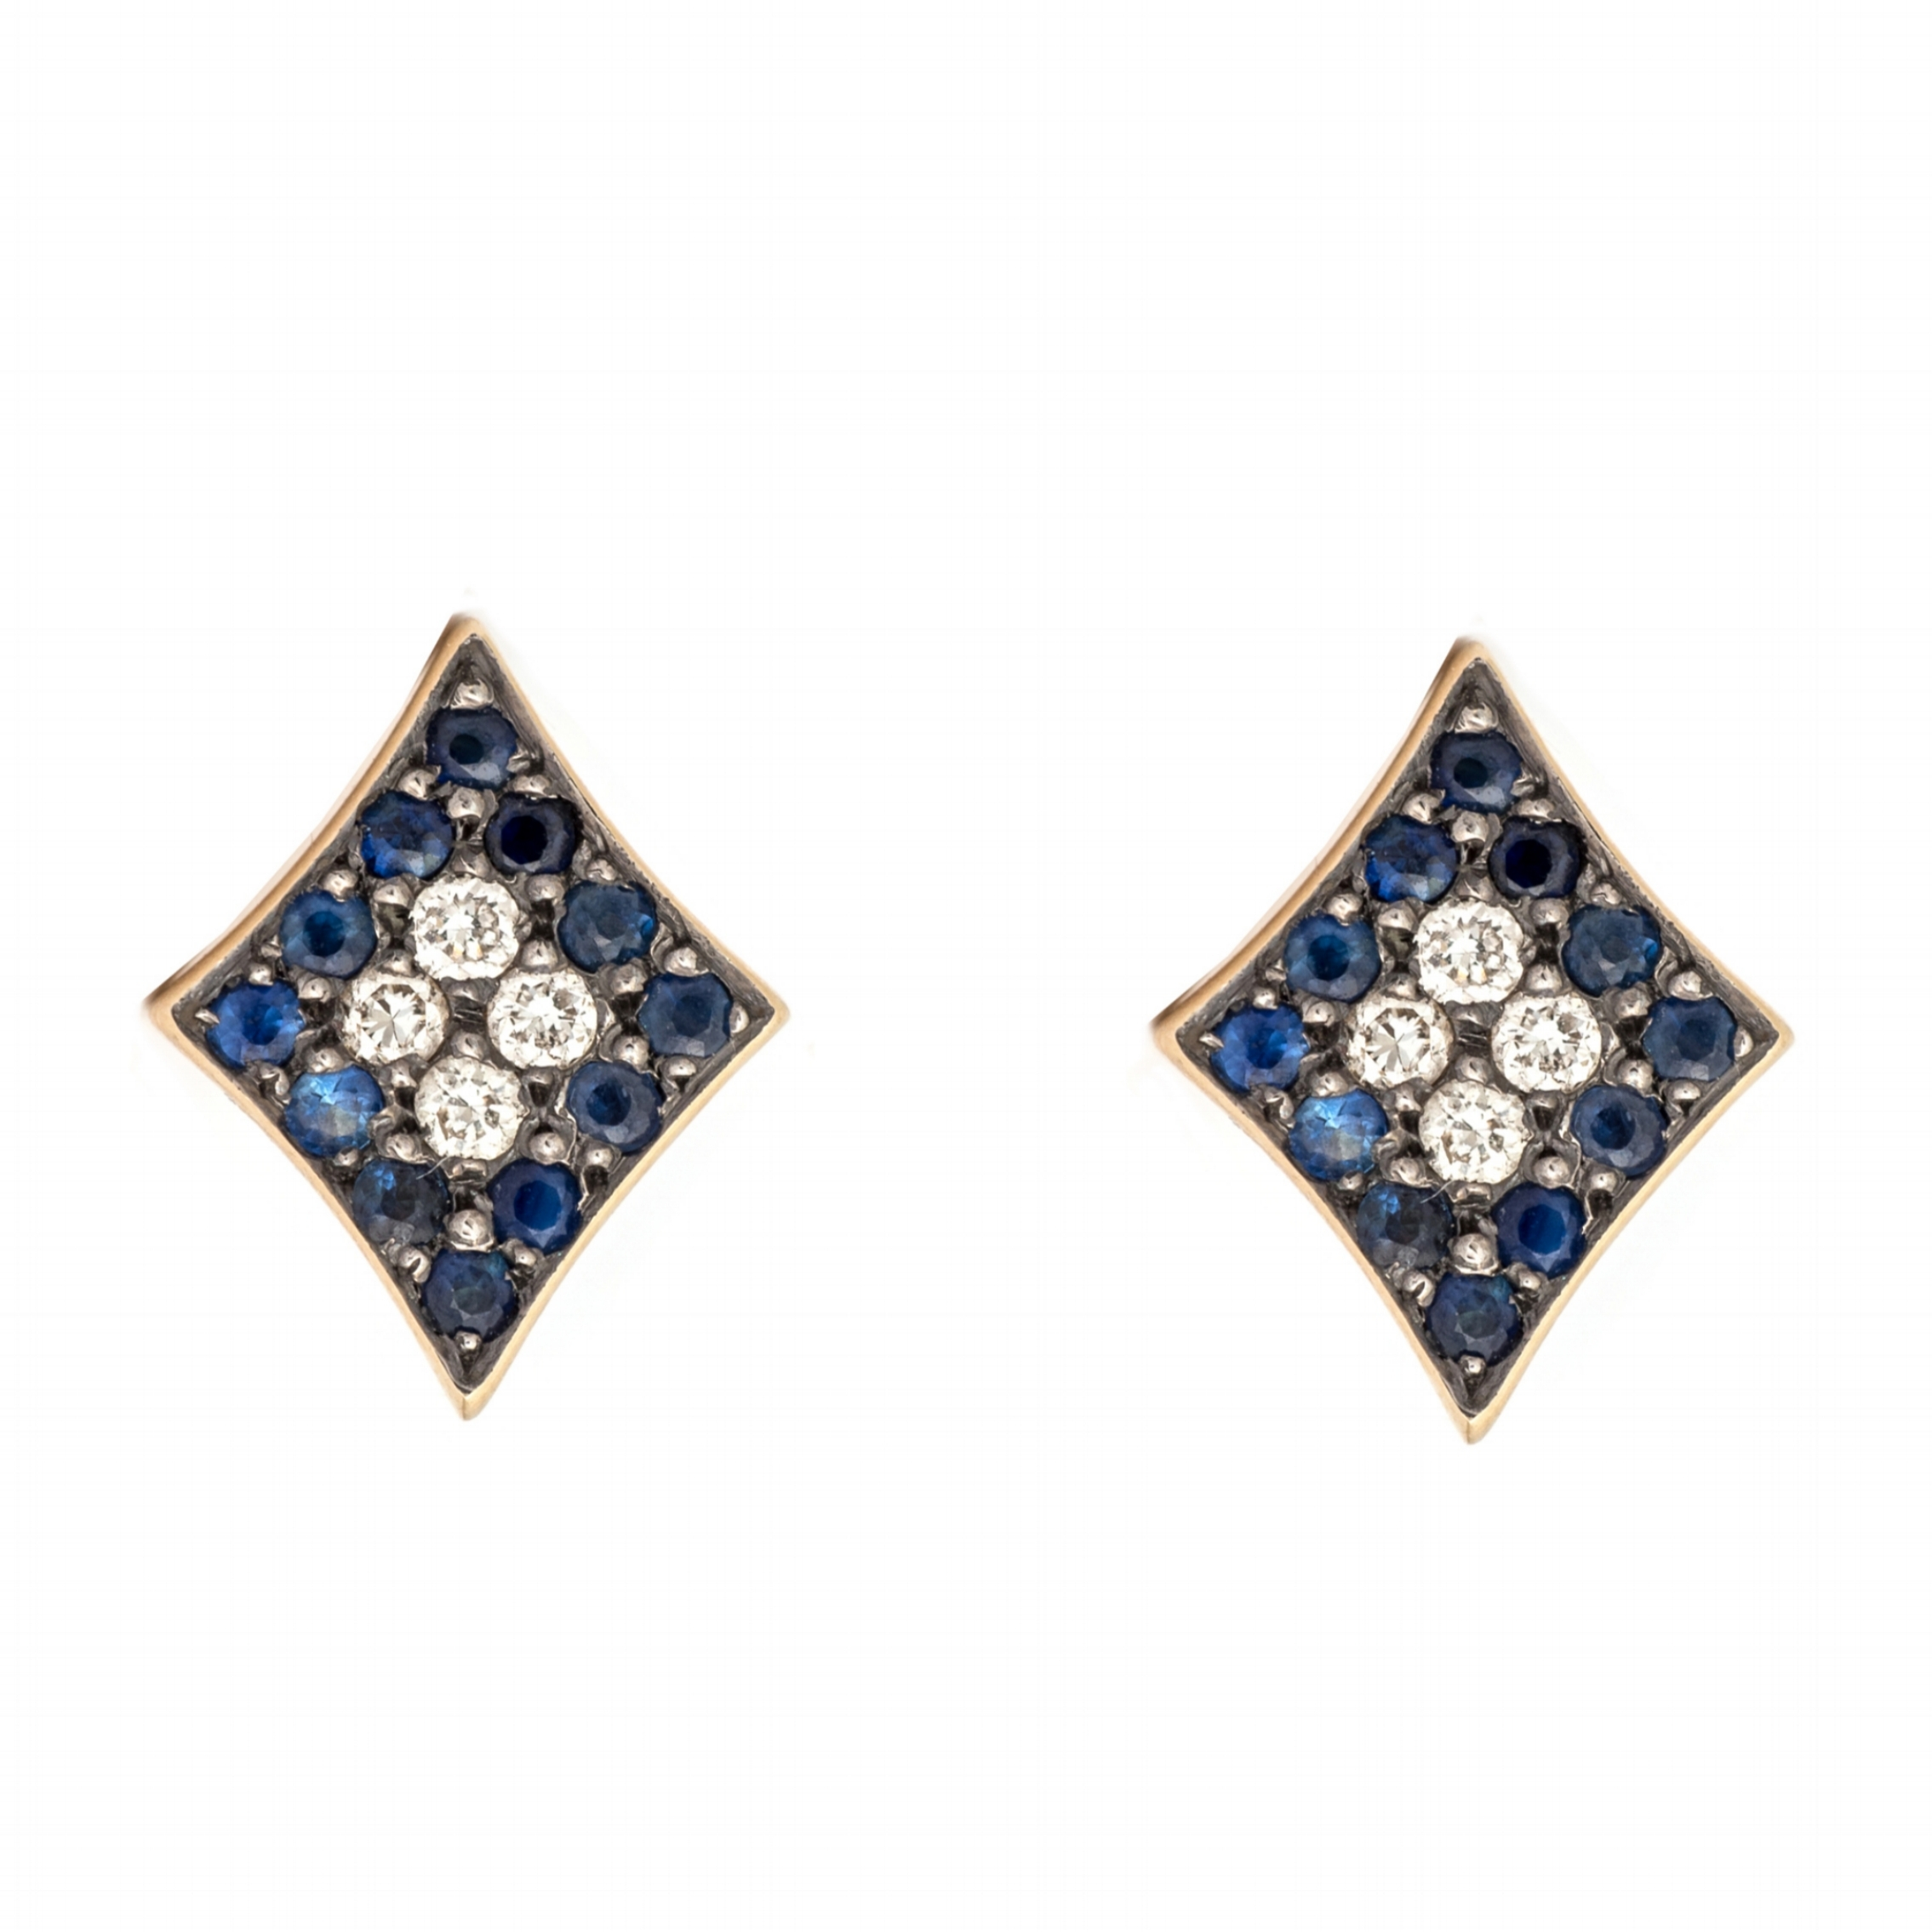 Rhombi Earrings